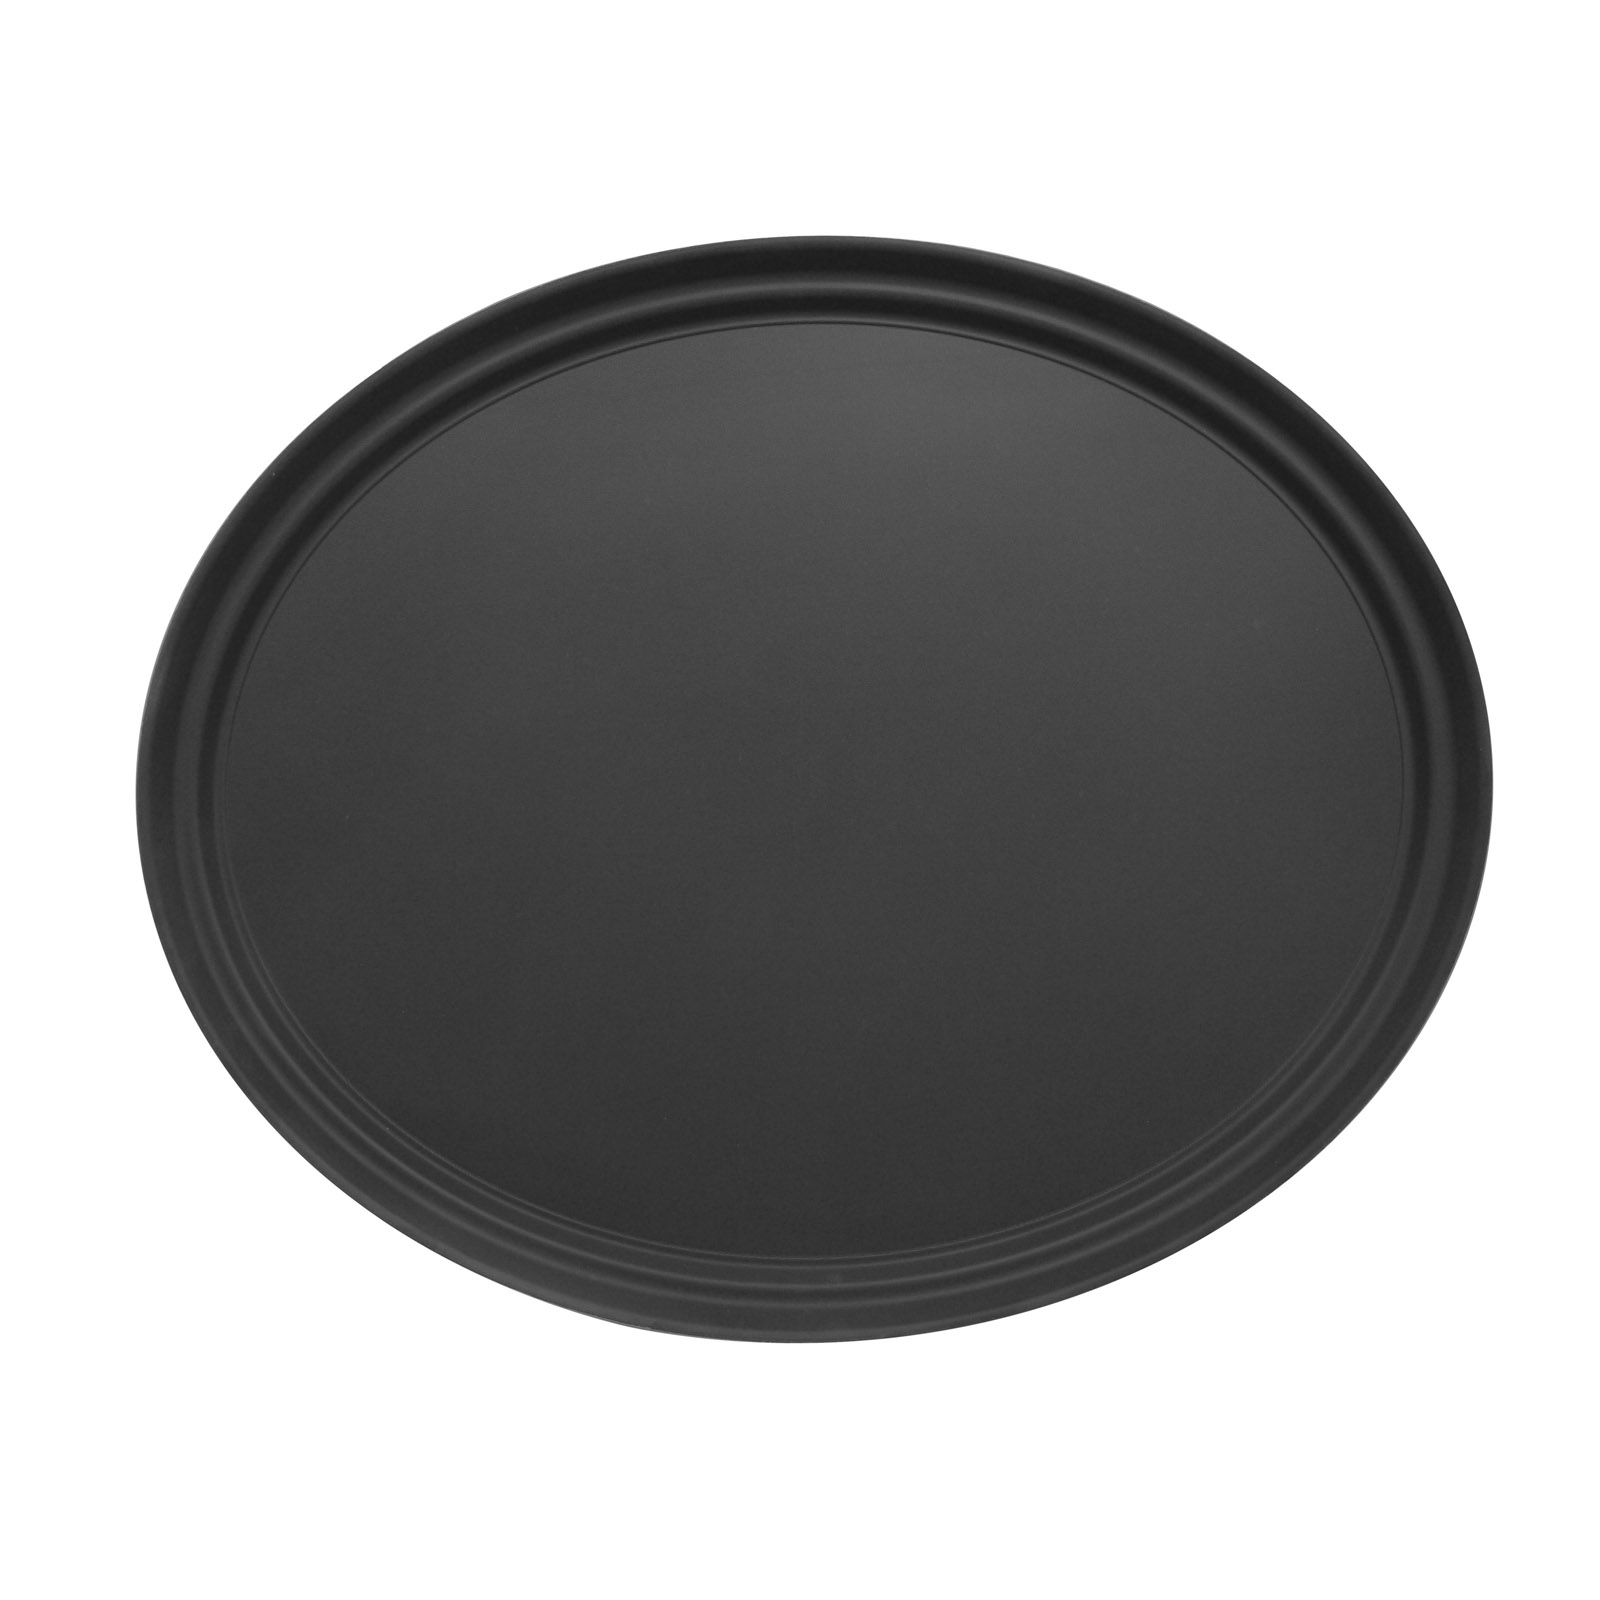 Admiral Craft NST-2025BK/OVAL serving tray, non-skid